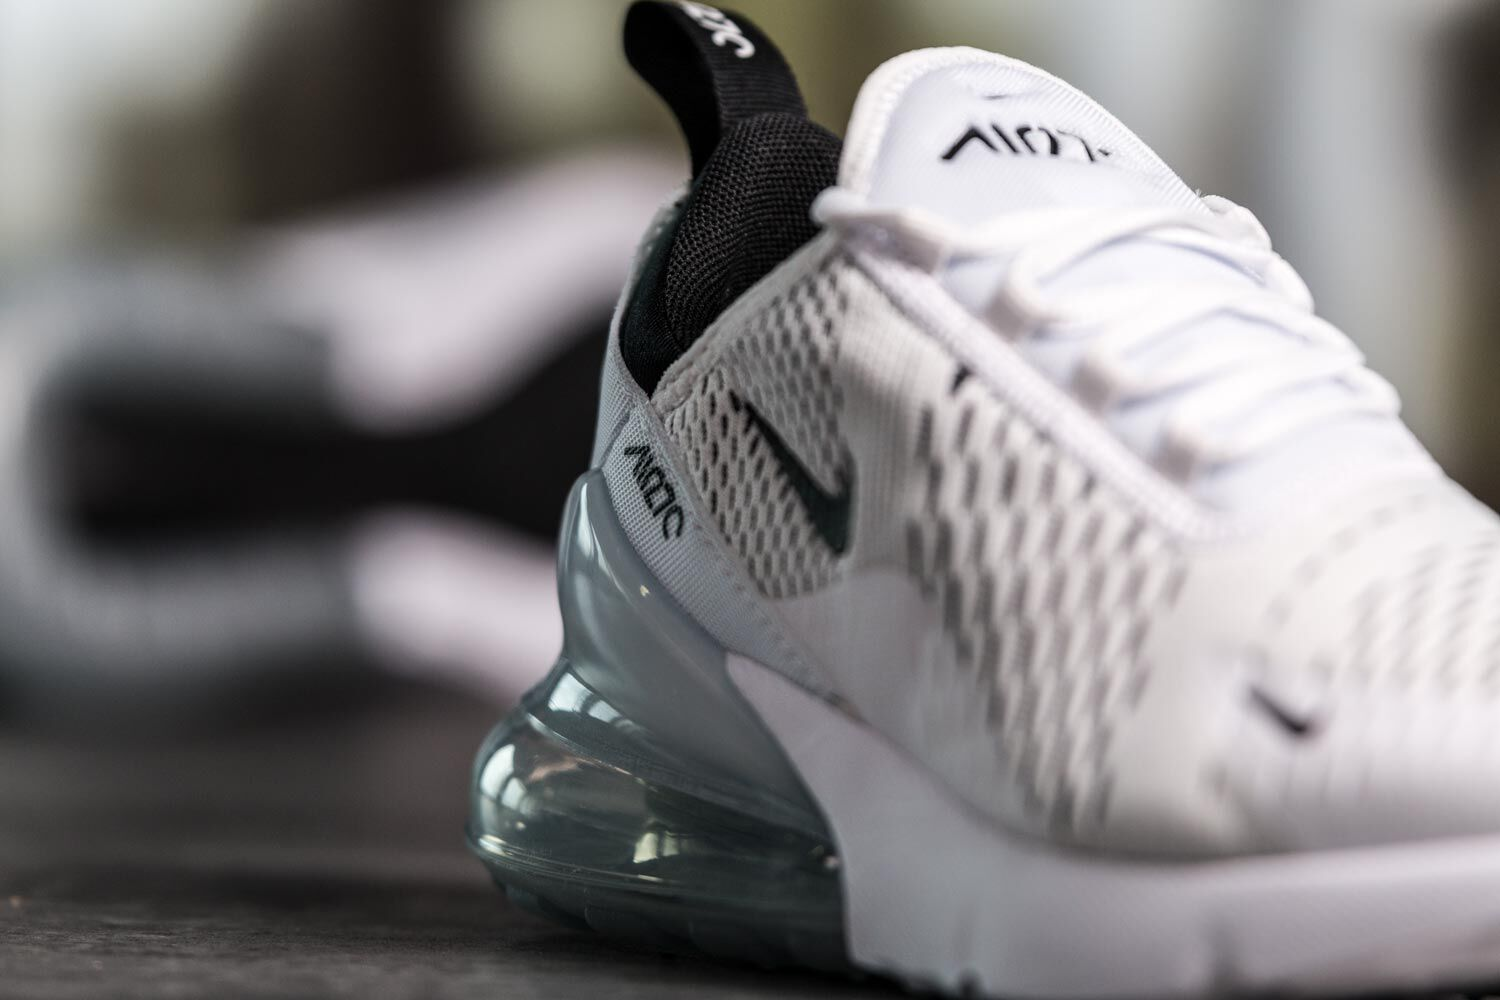 Air Max 270 - Baskets low - Hommes chez Stylefile